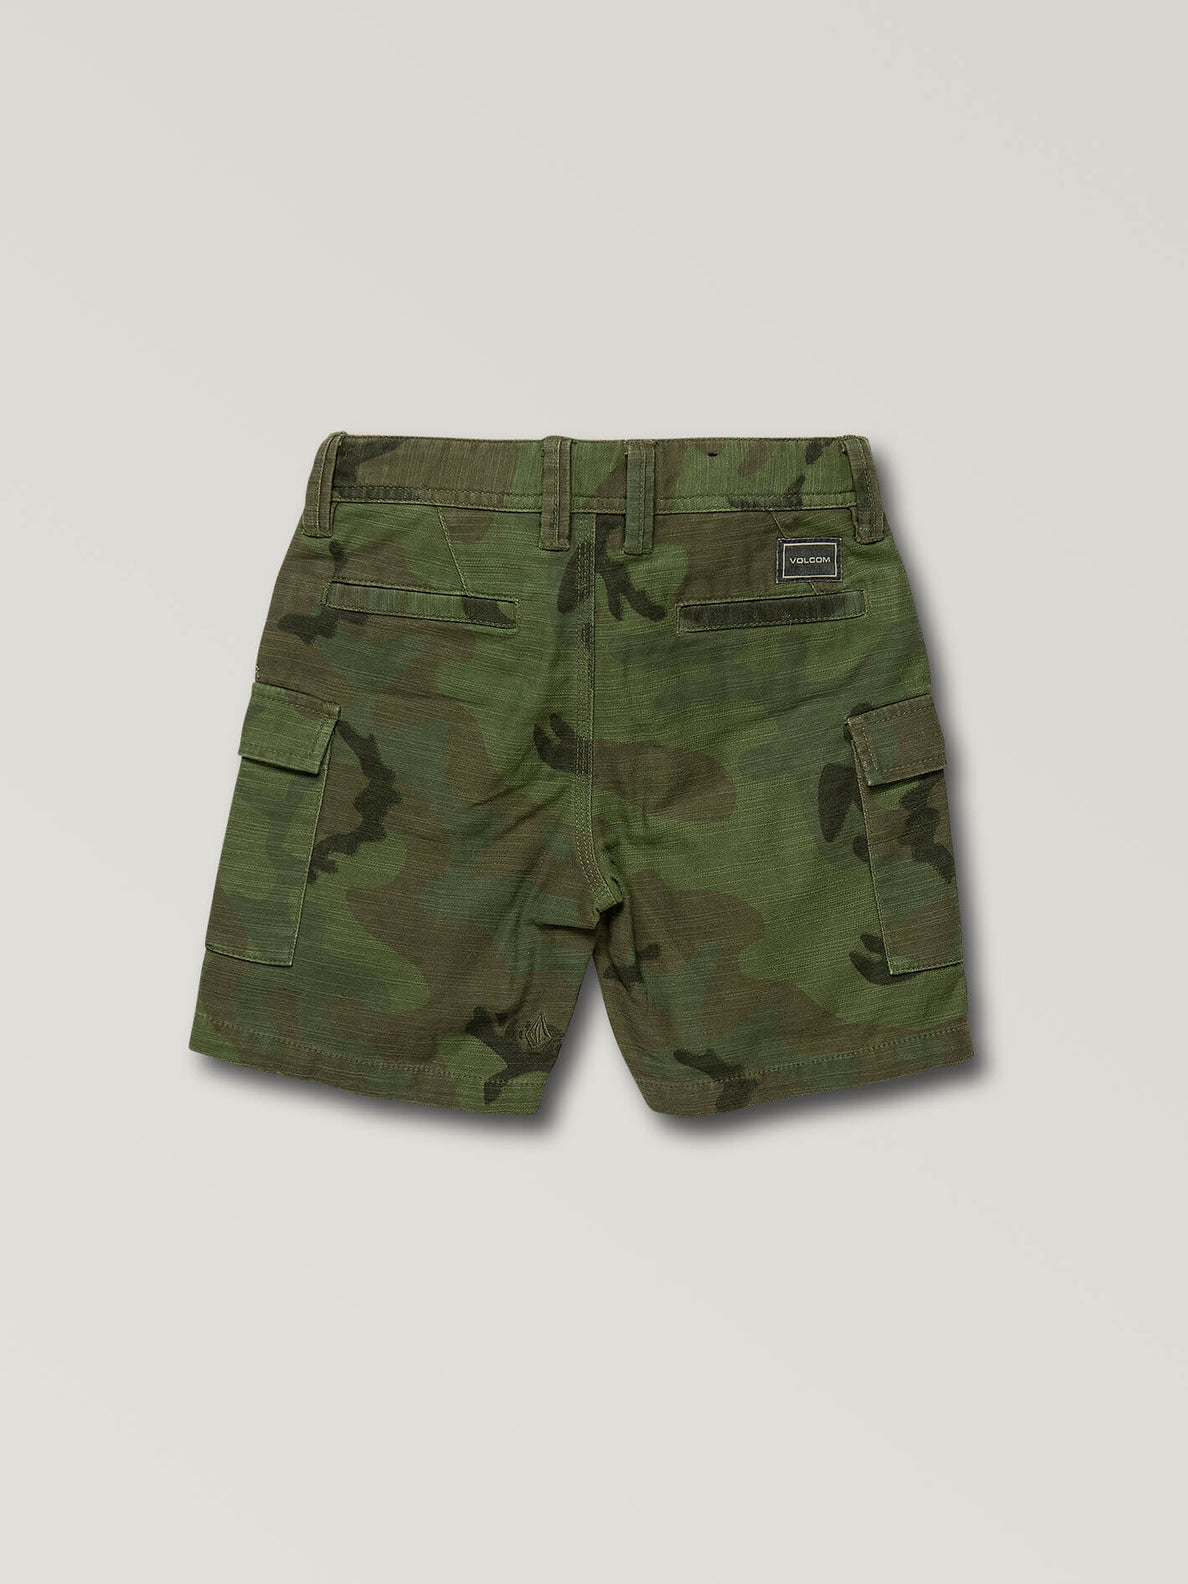 Little Boys Gritter Cargo Shorts In Camouflage, Back View